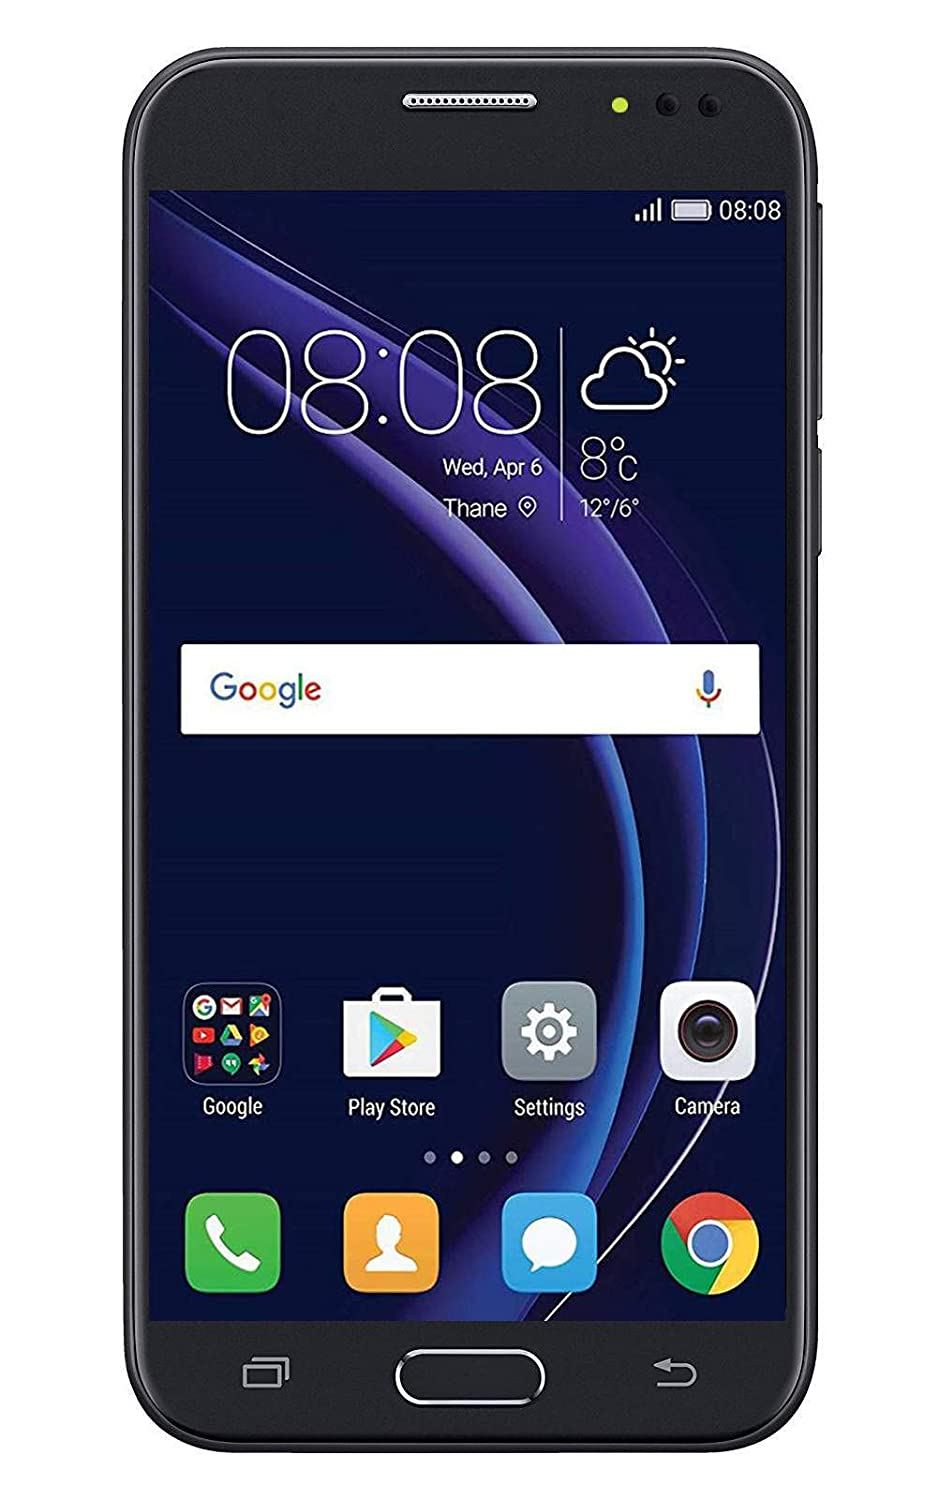 Tashan Model TS831 4G (Volte Not Supported) Model with 5.0-inch 720p Display, (Reliance Jio 4G Sim Support) 4 GB Internal Memory and 5 Mpix /2 Mpix Camera HD Smartphone in Black